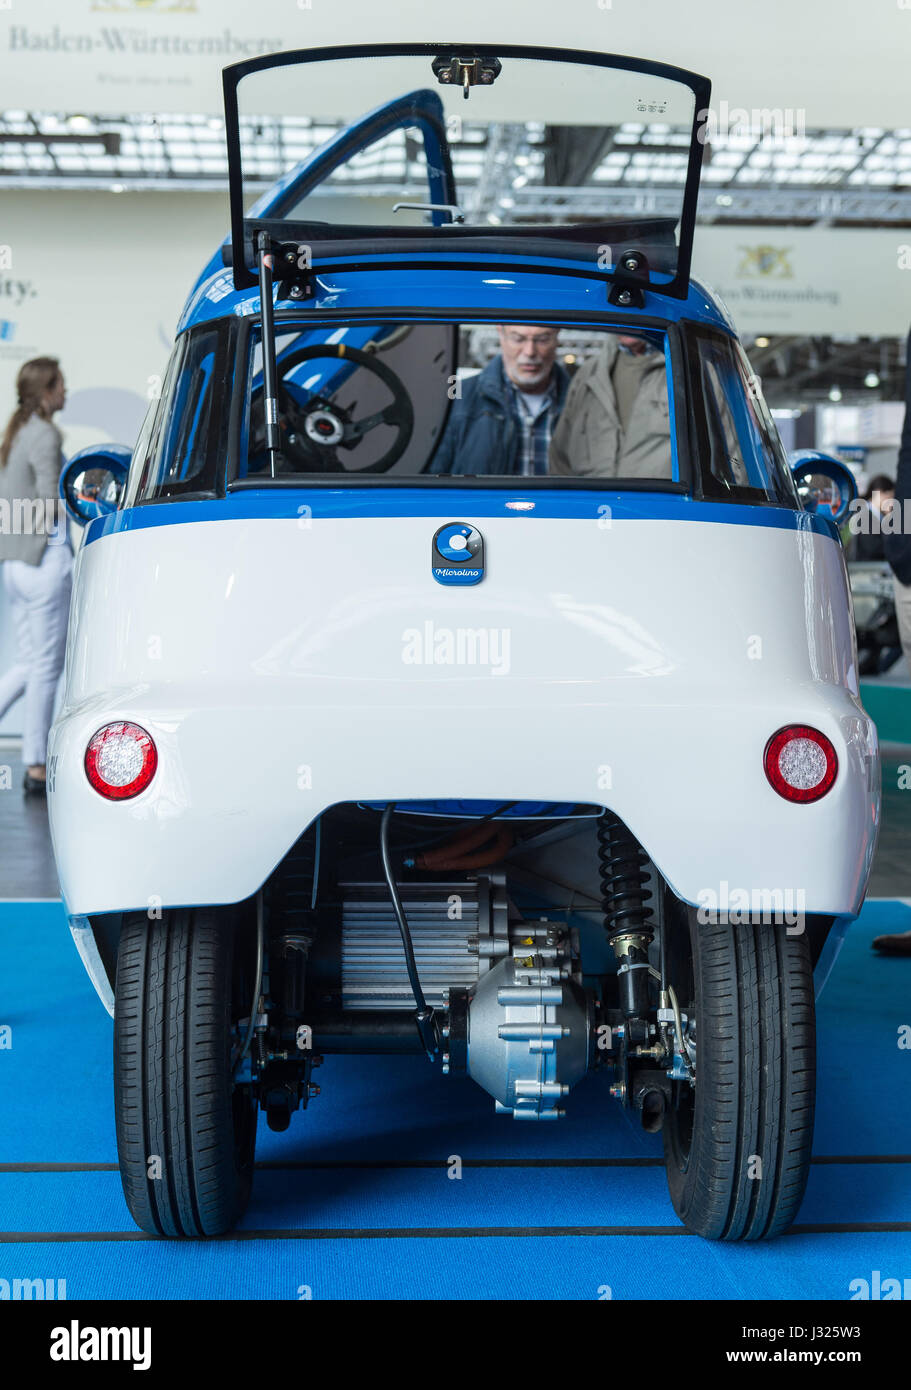 A Microlino electric car of the Swiss company Micro can be seen at Stock Photo: 139575439  Alamy